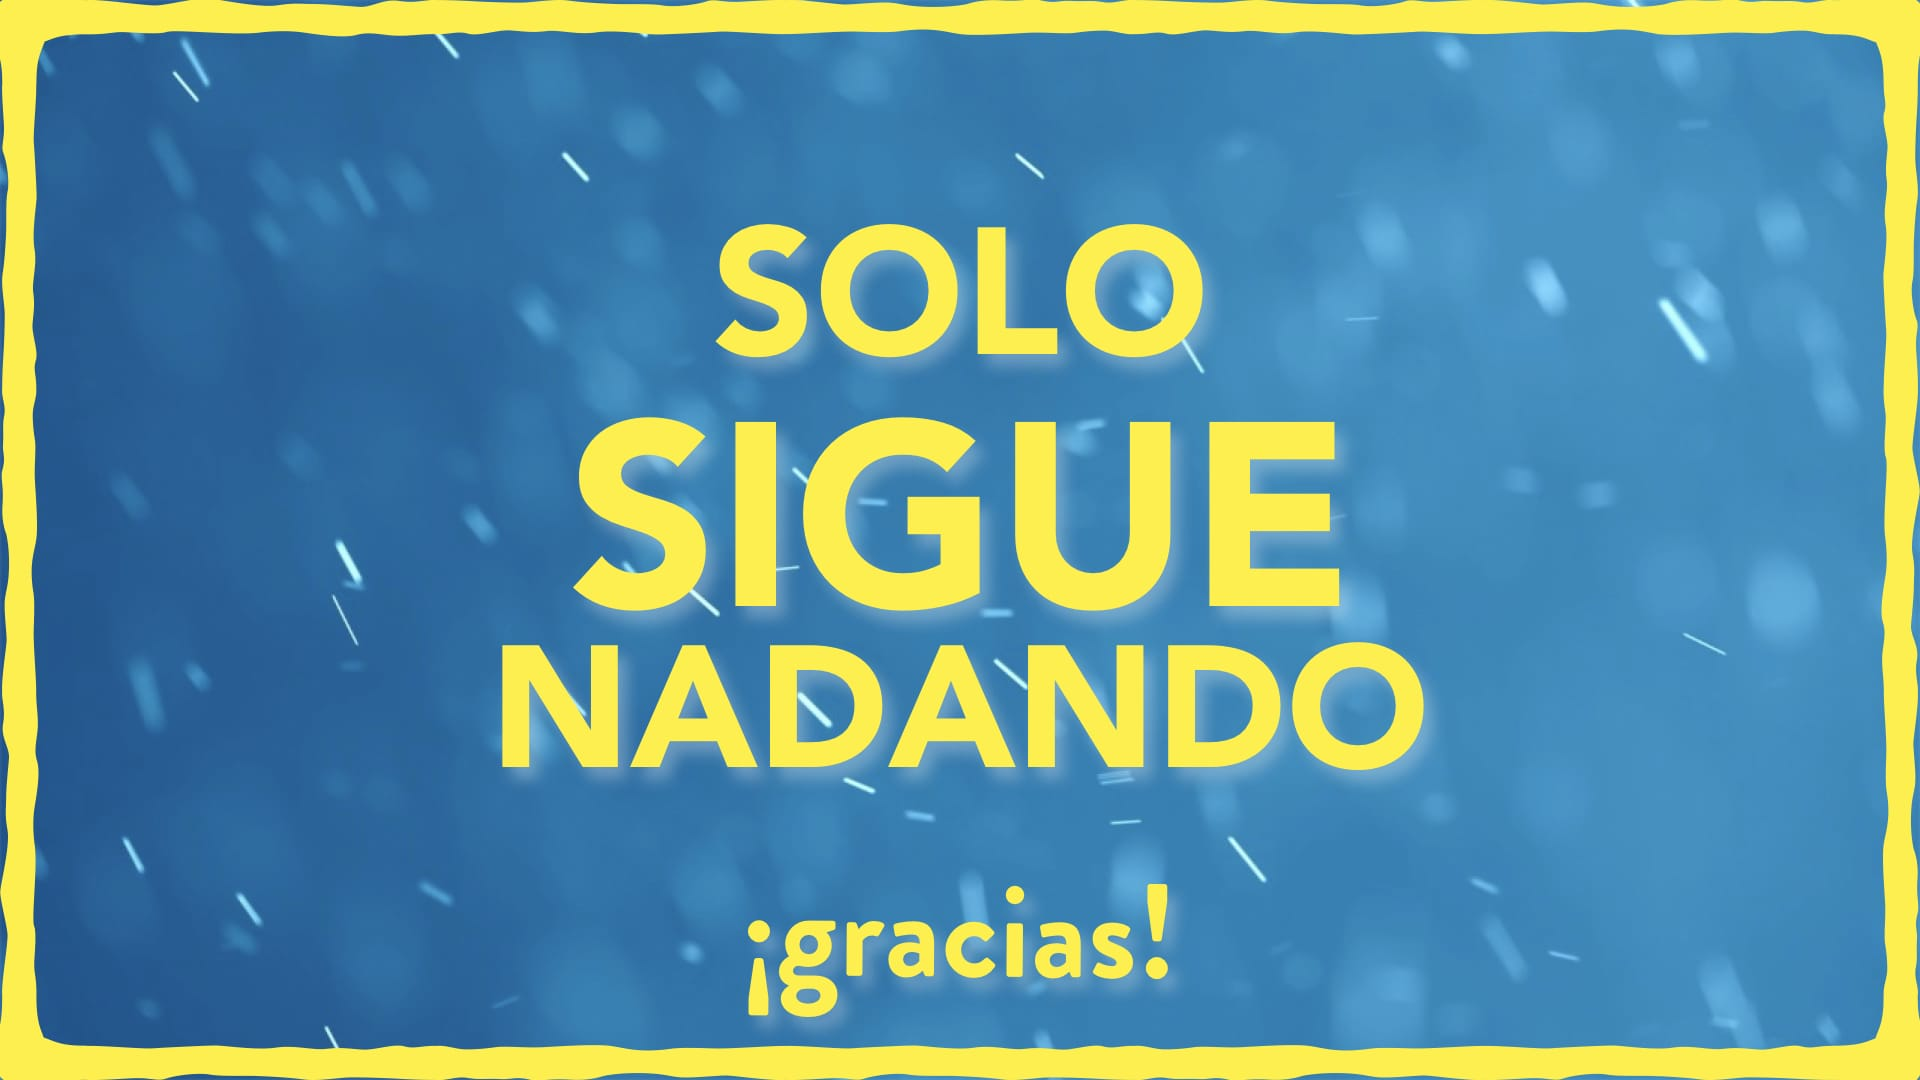 image from Solo sigue nadando